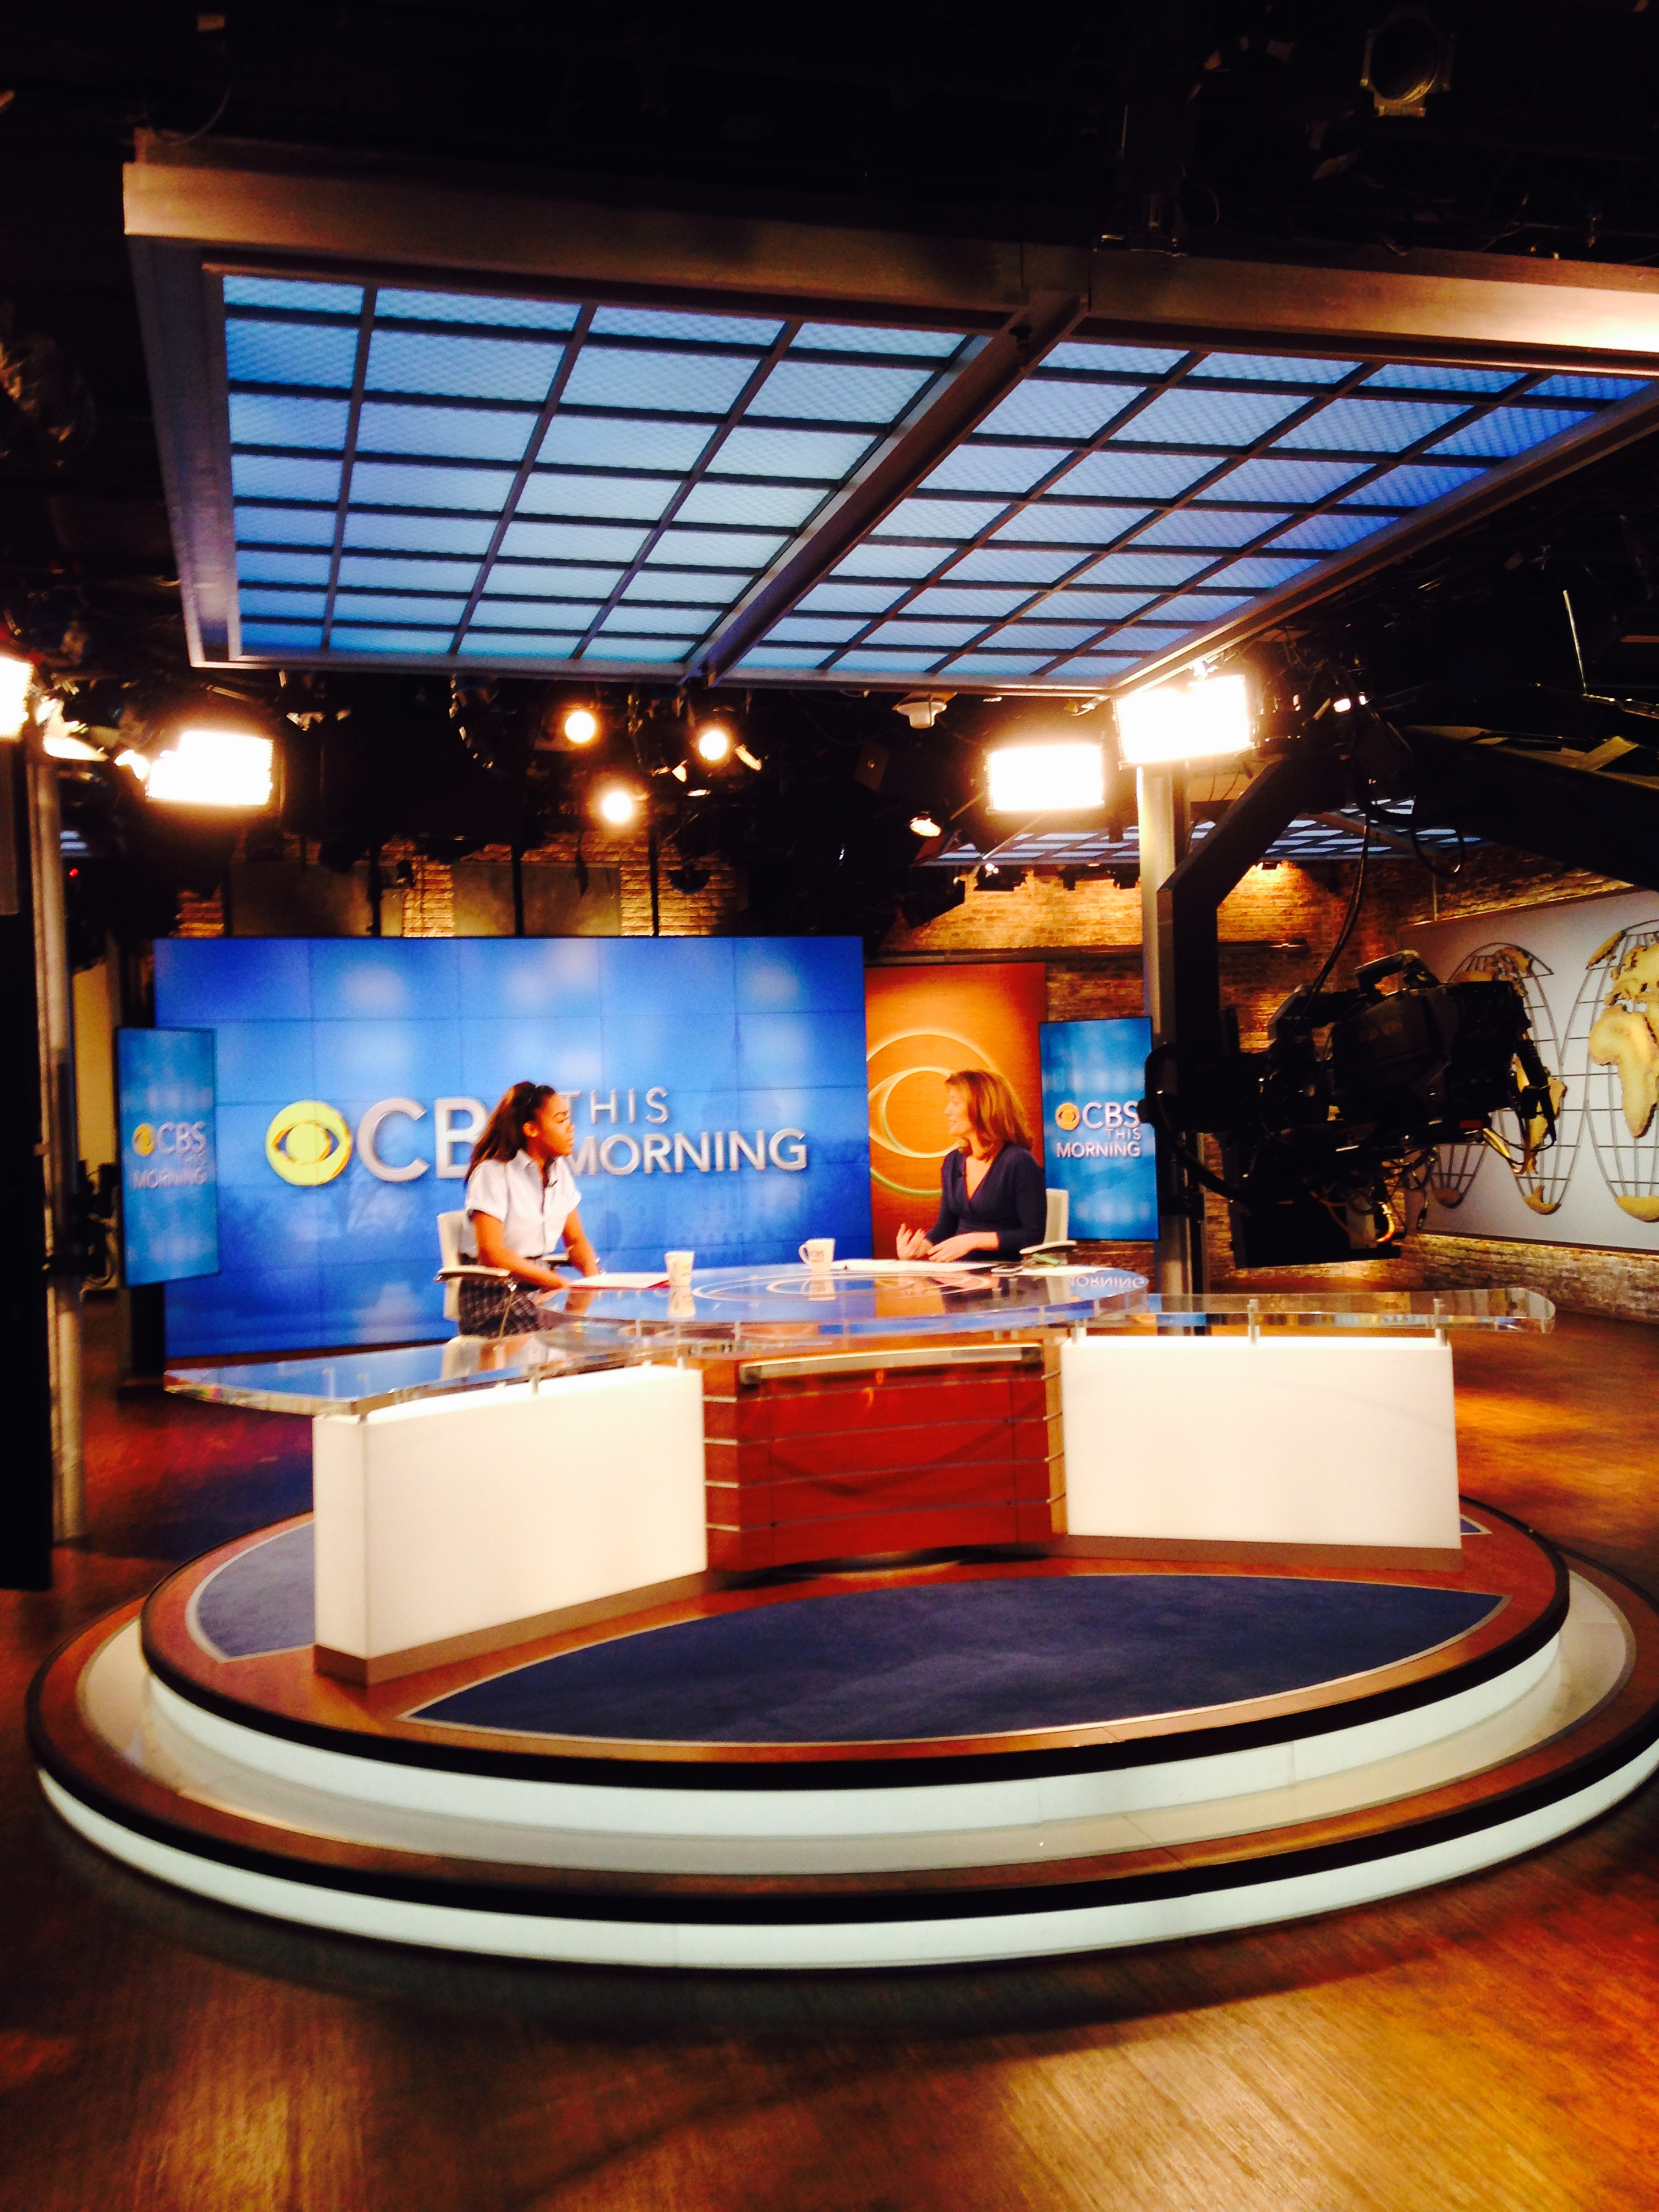 Alexis at CBS with Norah